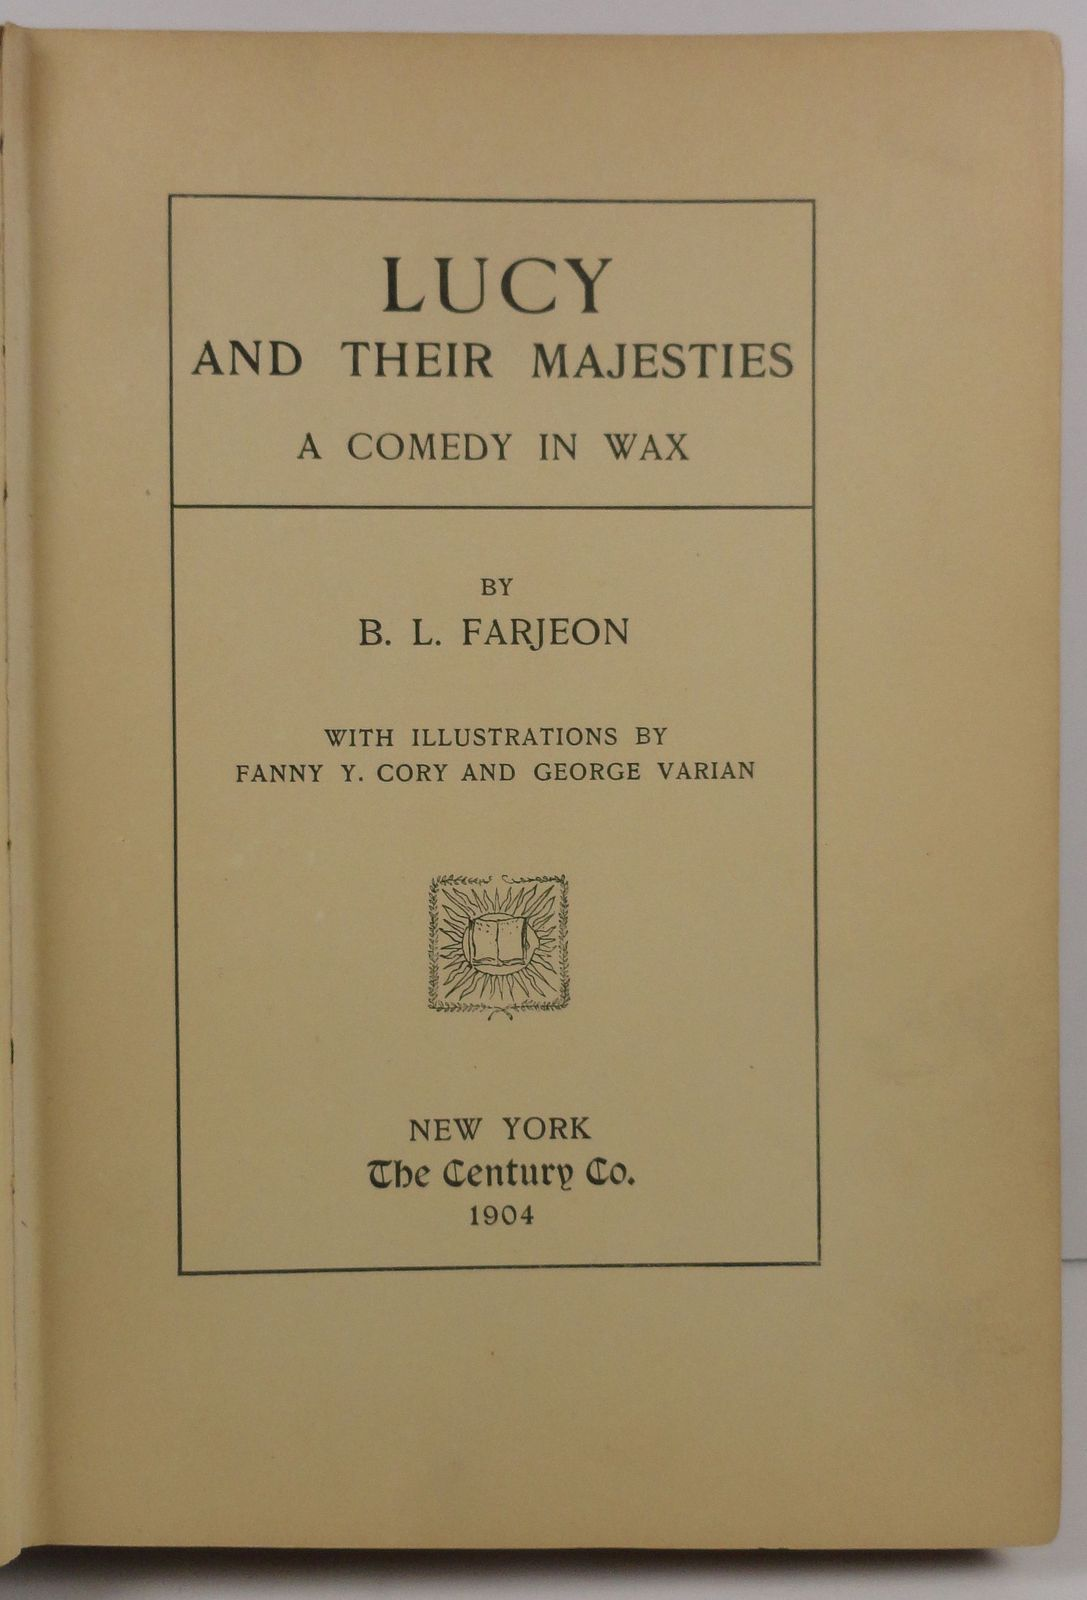 Lucy and Their Majesties A Comedy in Wax by B.L. Farjeon